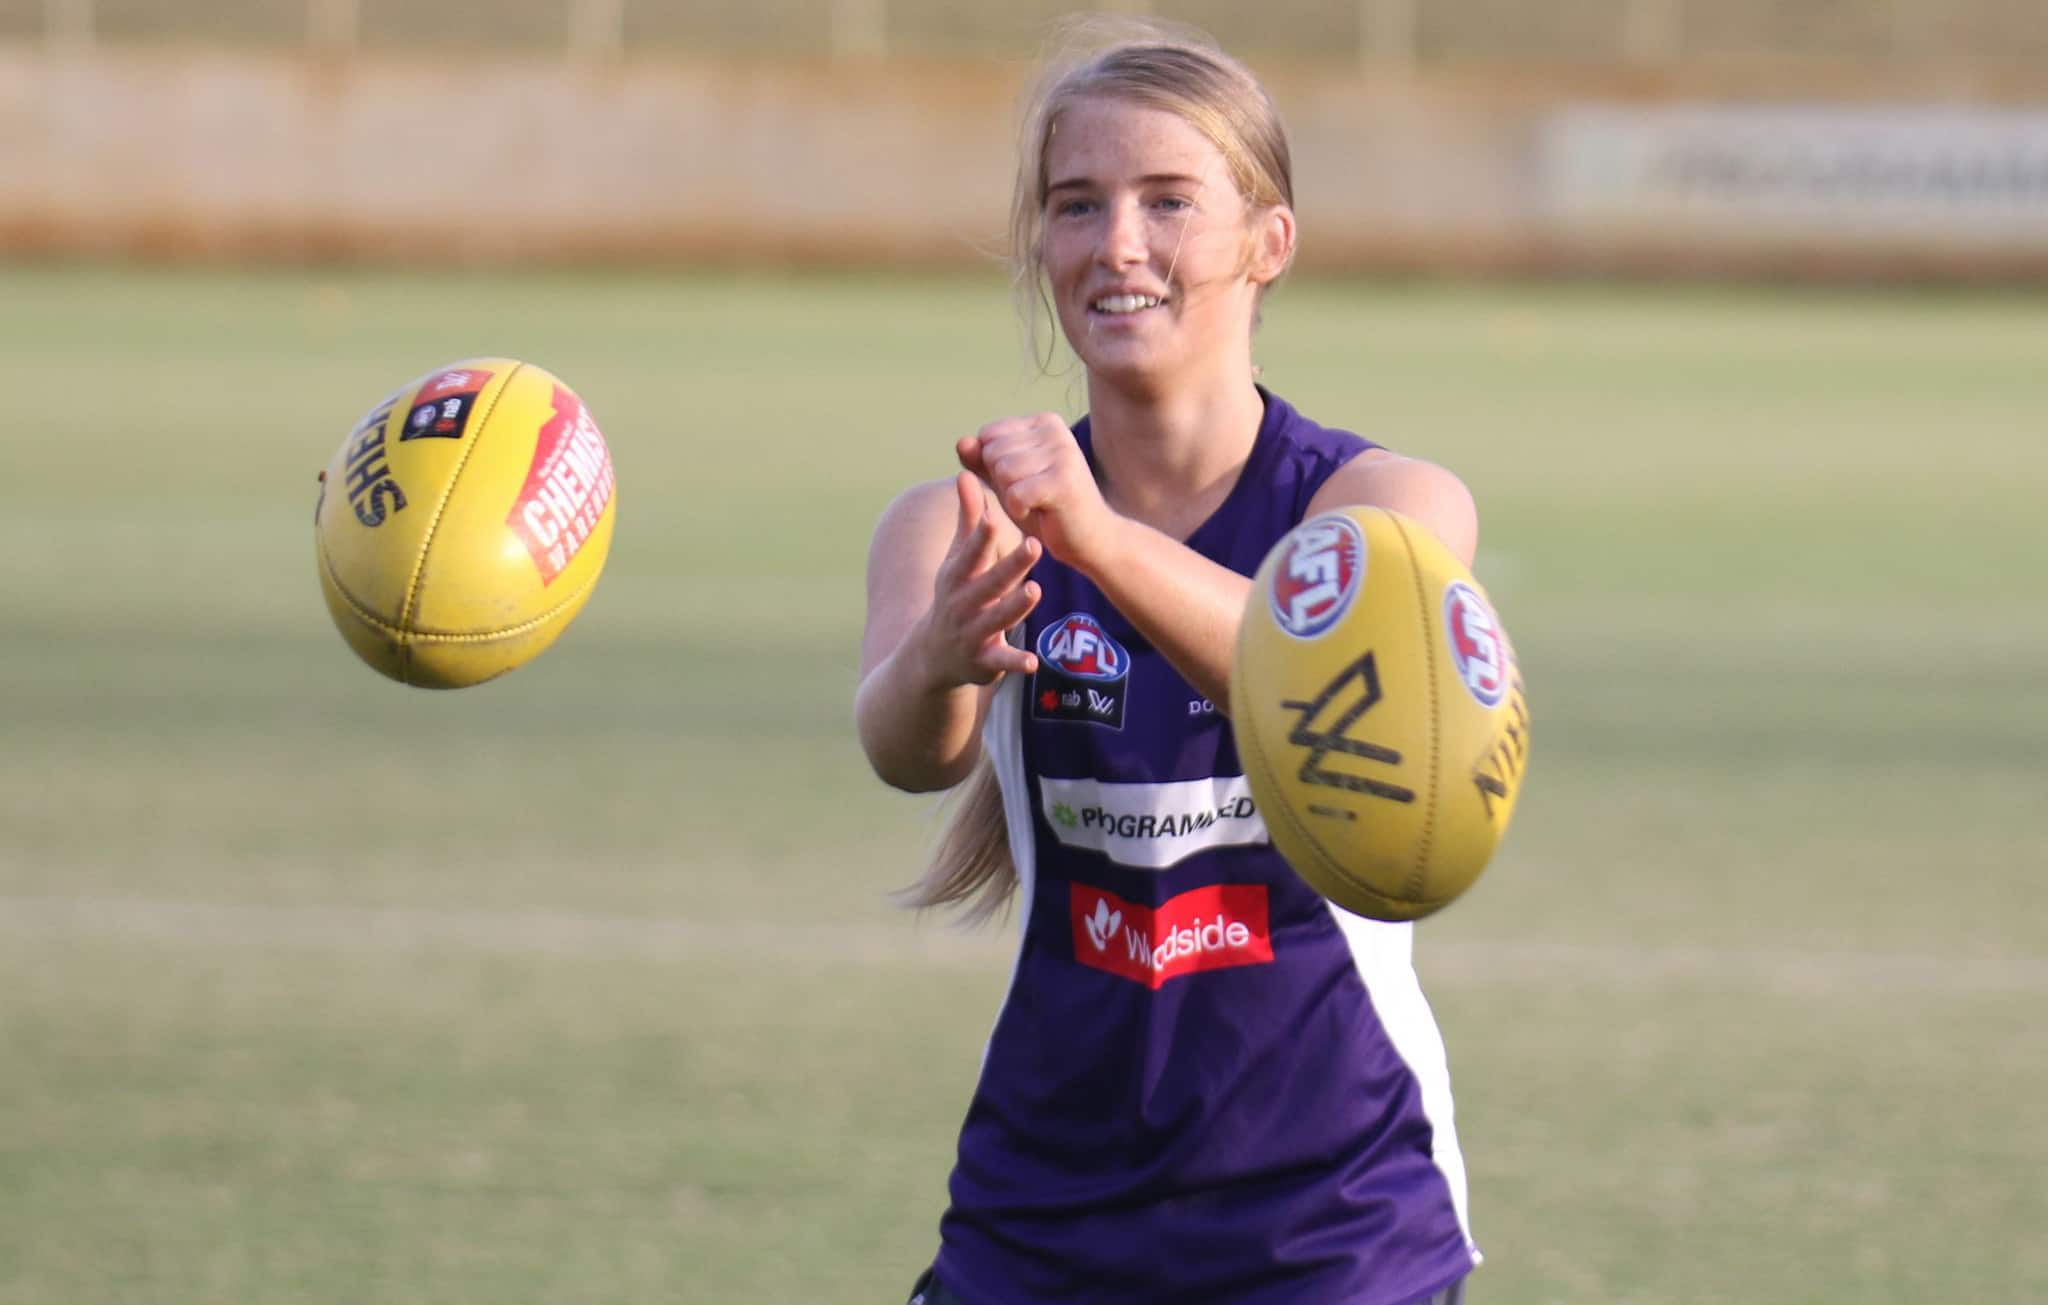 AFLW: 19 retained as Stewart signs